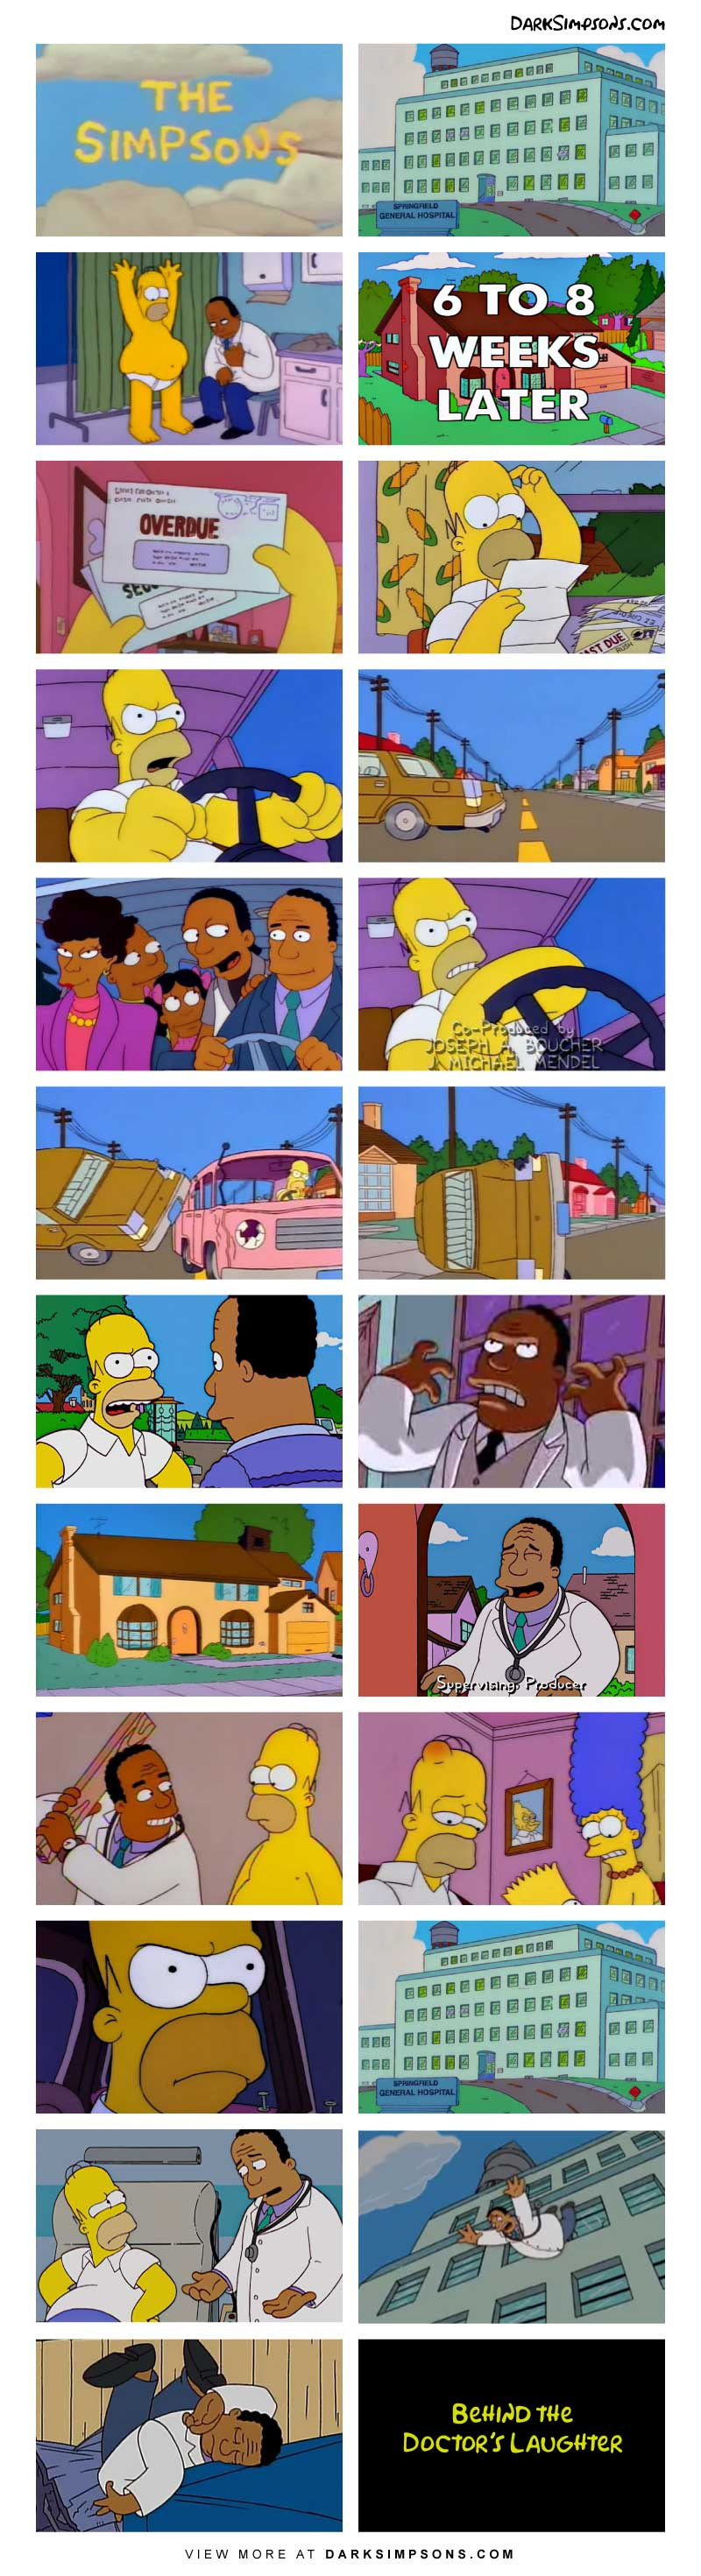 Being behind on paying bills is fairly common for the Simpsons. But when Homer receives a massive bill from a recent visit to Dr. Hibbert for a simple checkup, he is outraged. Now Homer and Dr. Hibbert are in a childish back and forth battle that quickly escalates and becomes fatal.